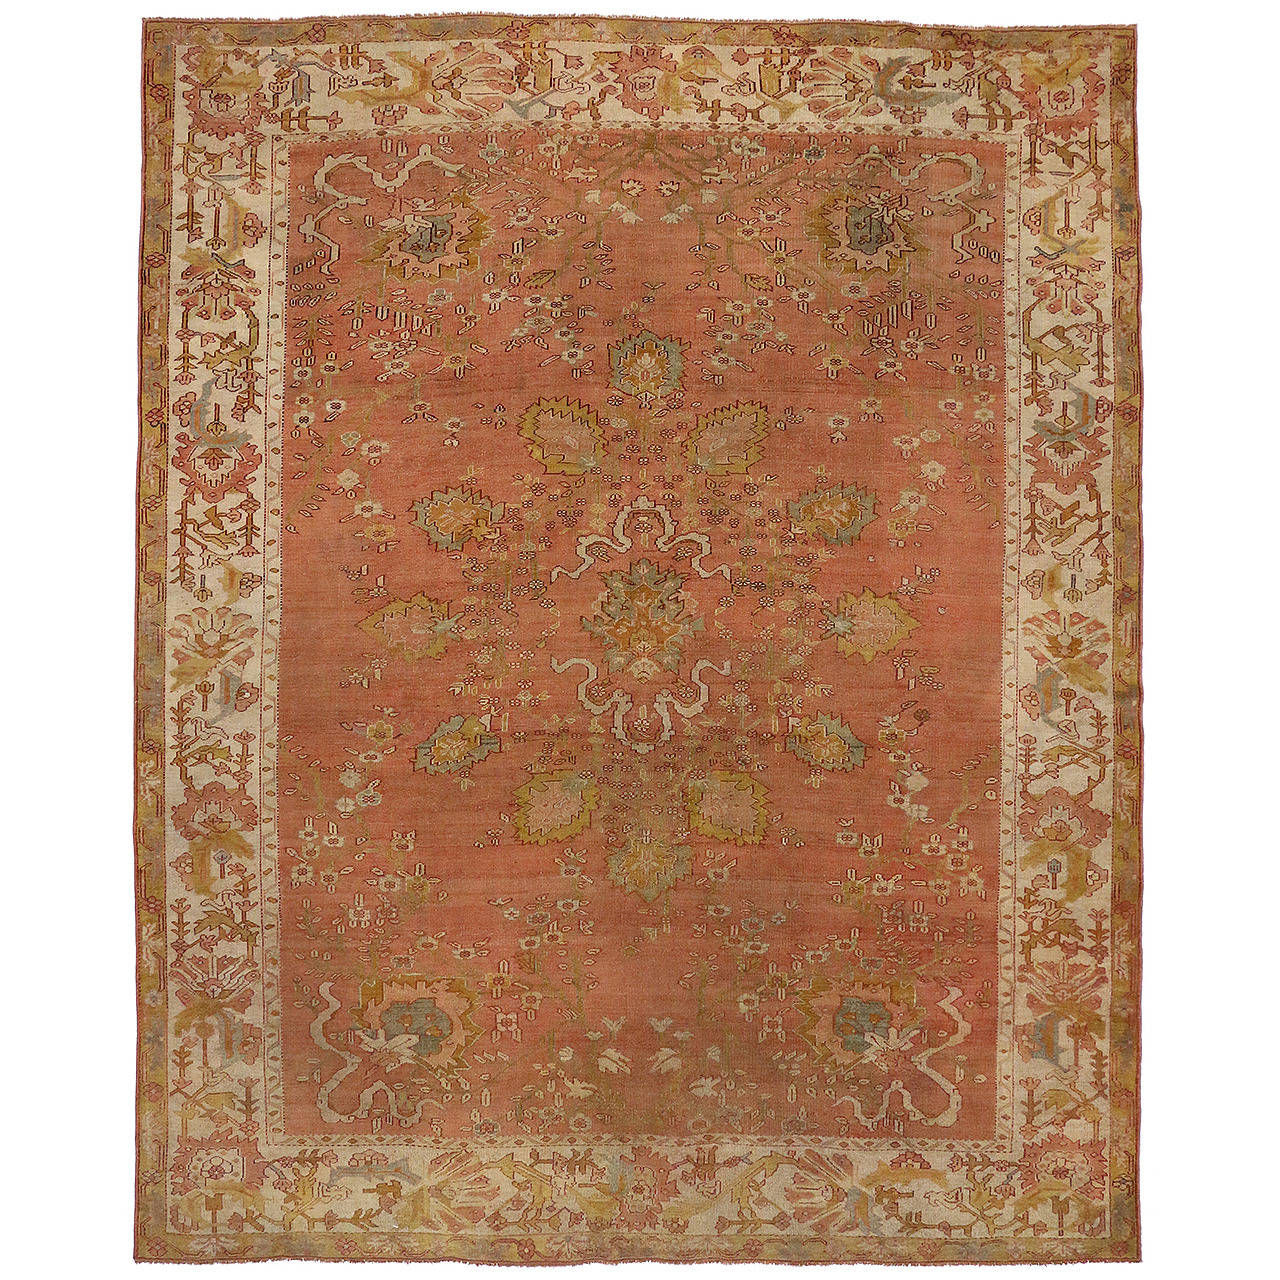 Antique Turkish Oushak Area Rug For Sale At 1stdibs